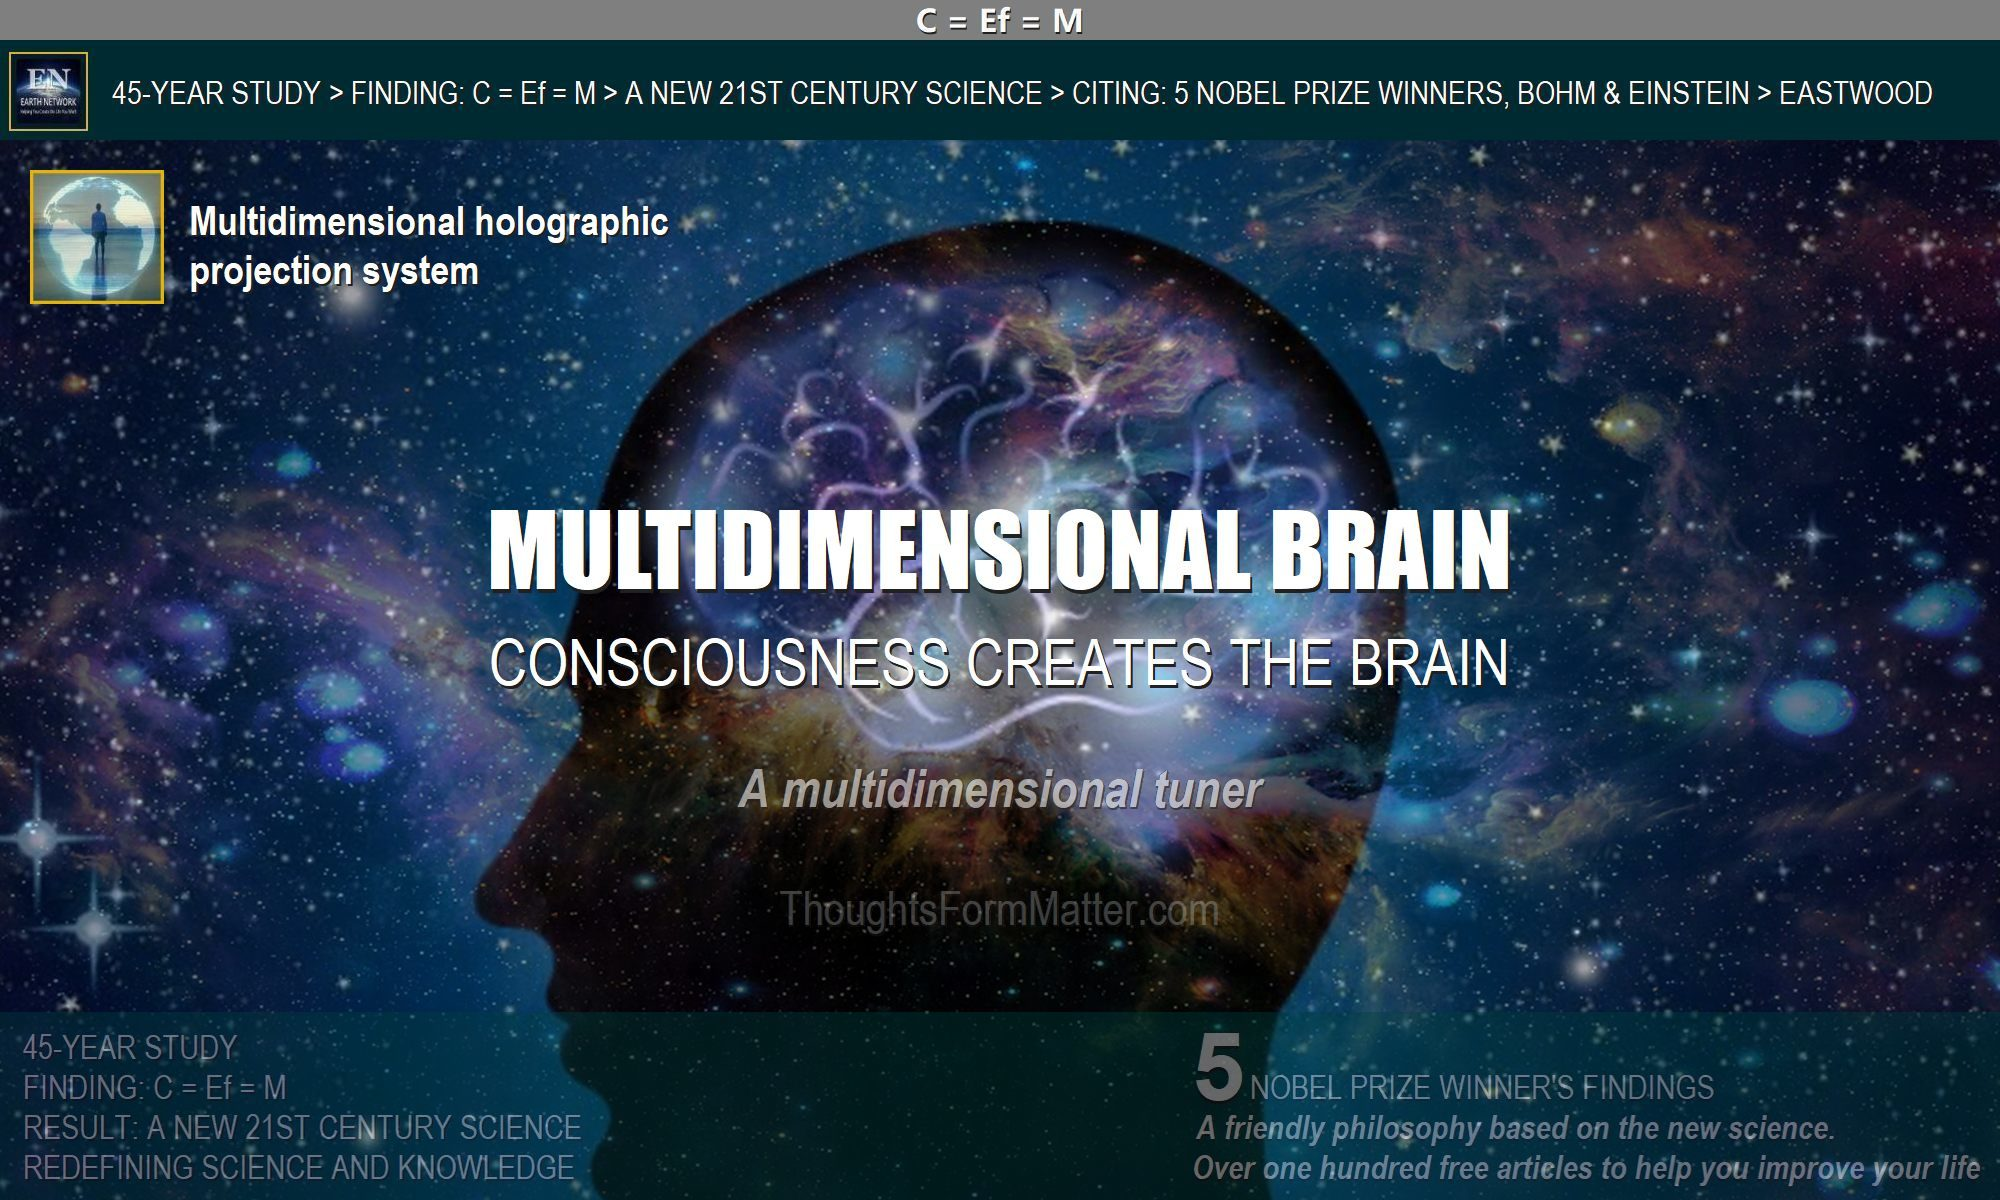 The brain does not produce consciousness create the brain new science